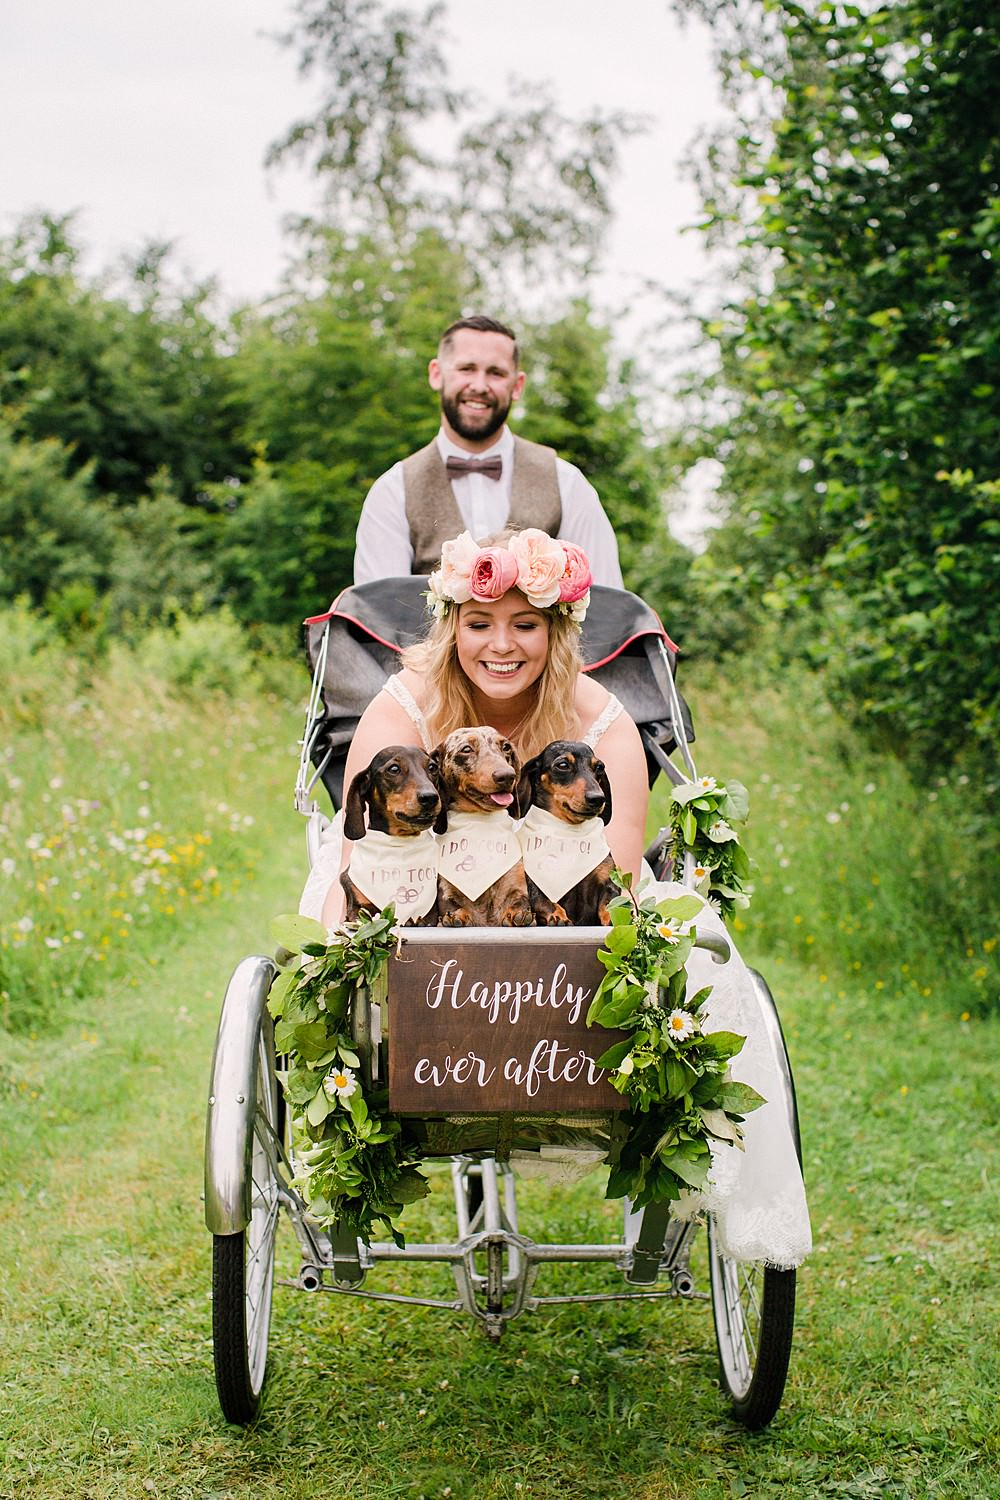 Bicycle Transport Rickshaw Pet Wedding Ideas Vicky Plum Photography